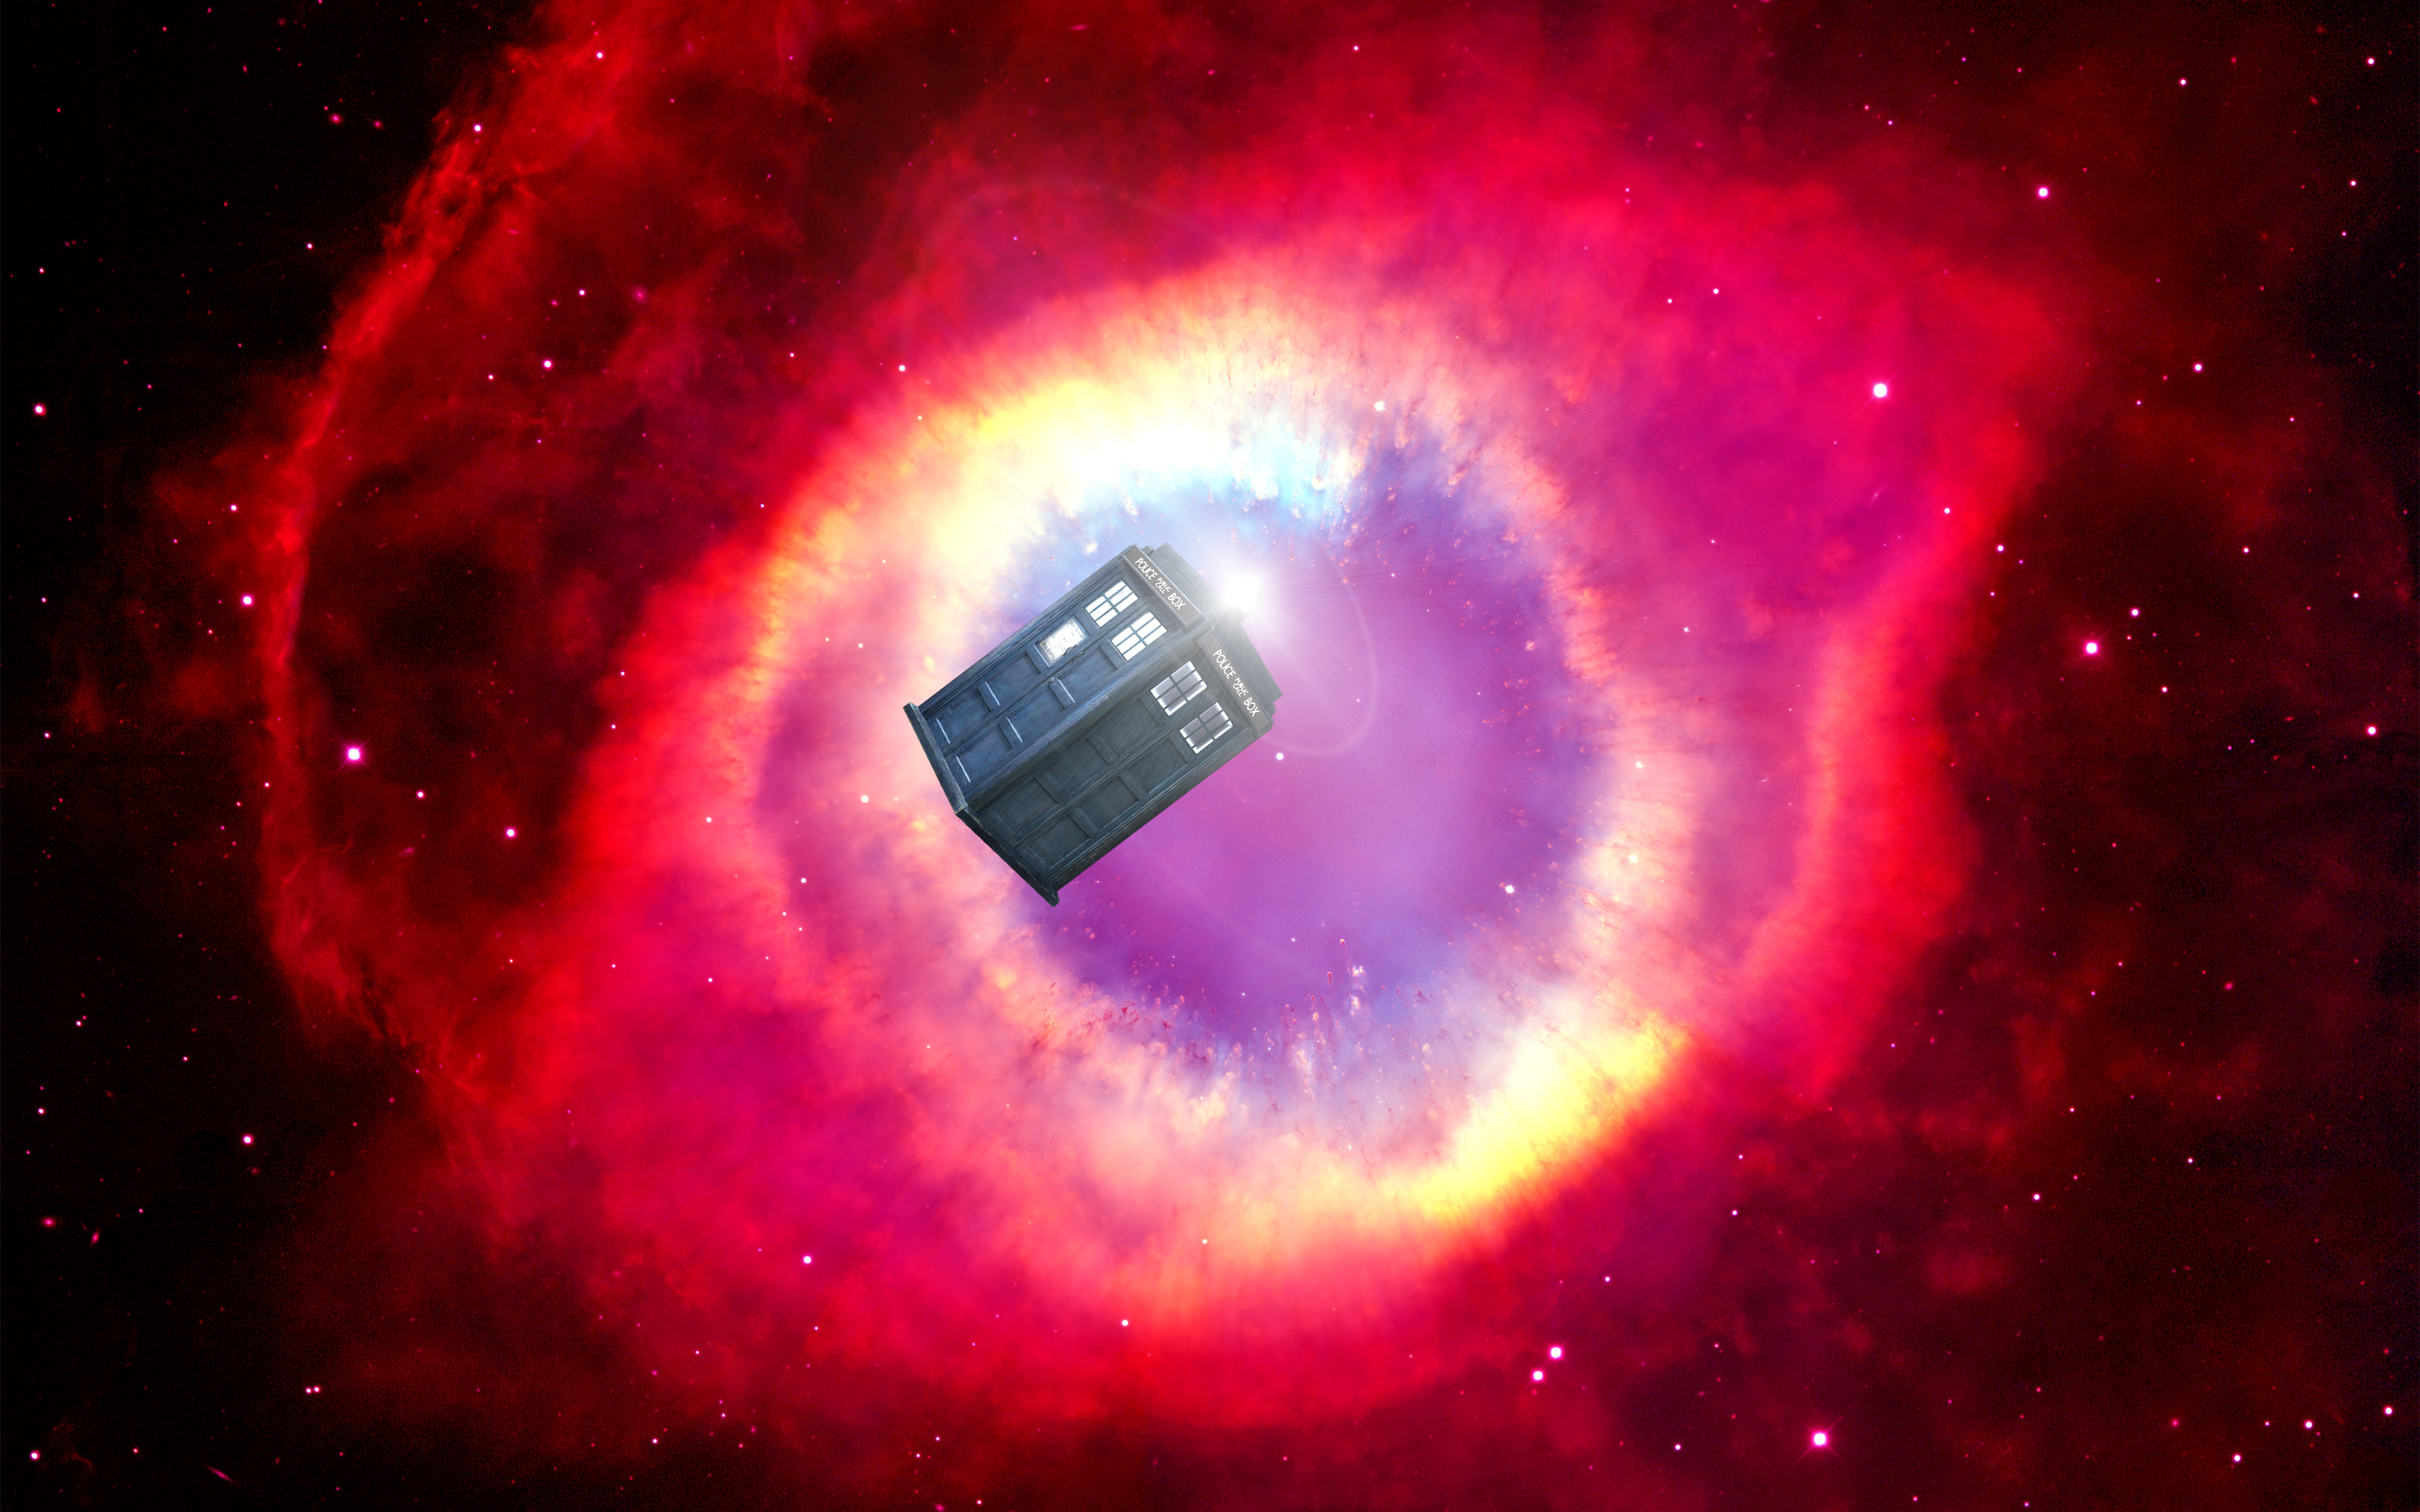 Cool Wallpaper Mac Doctor Who - doctor_who_wallpaper_by_drjbuzz-d5qc2xb  You Should Have_784129.jpg